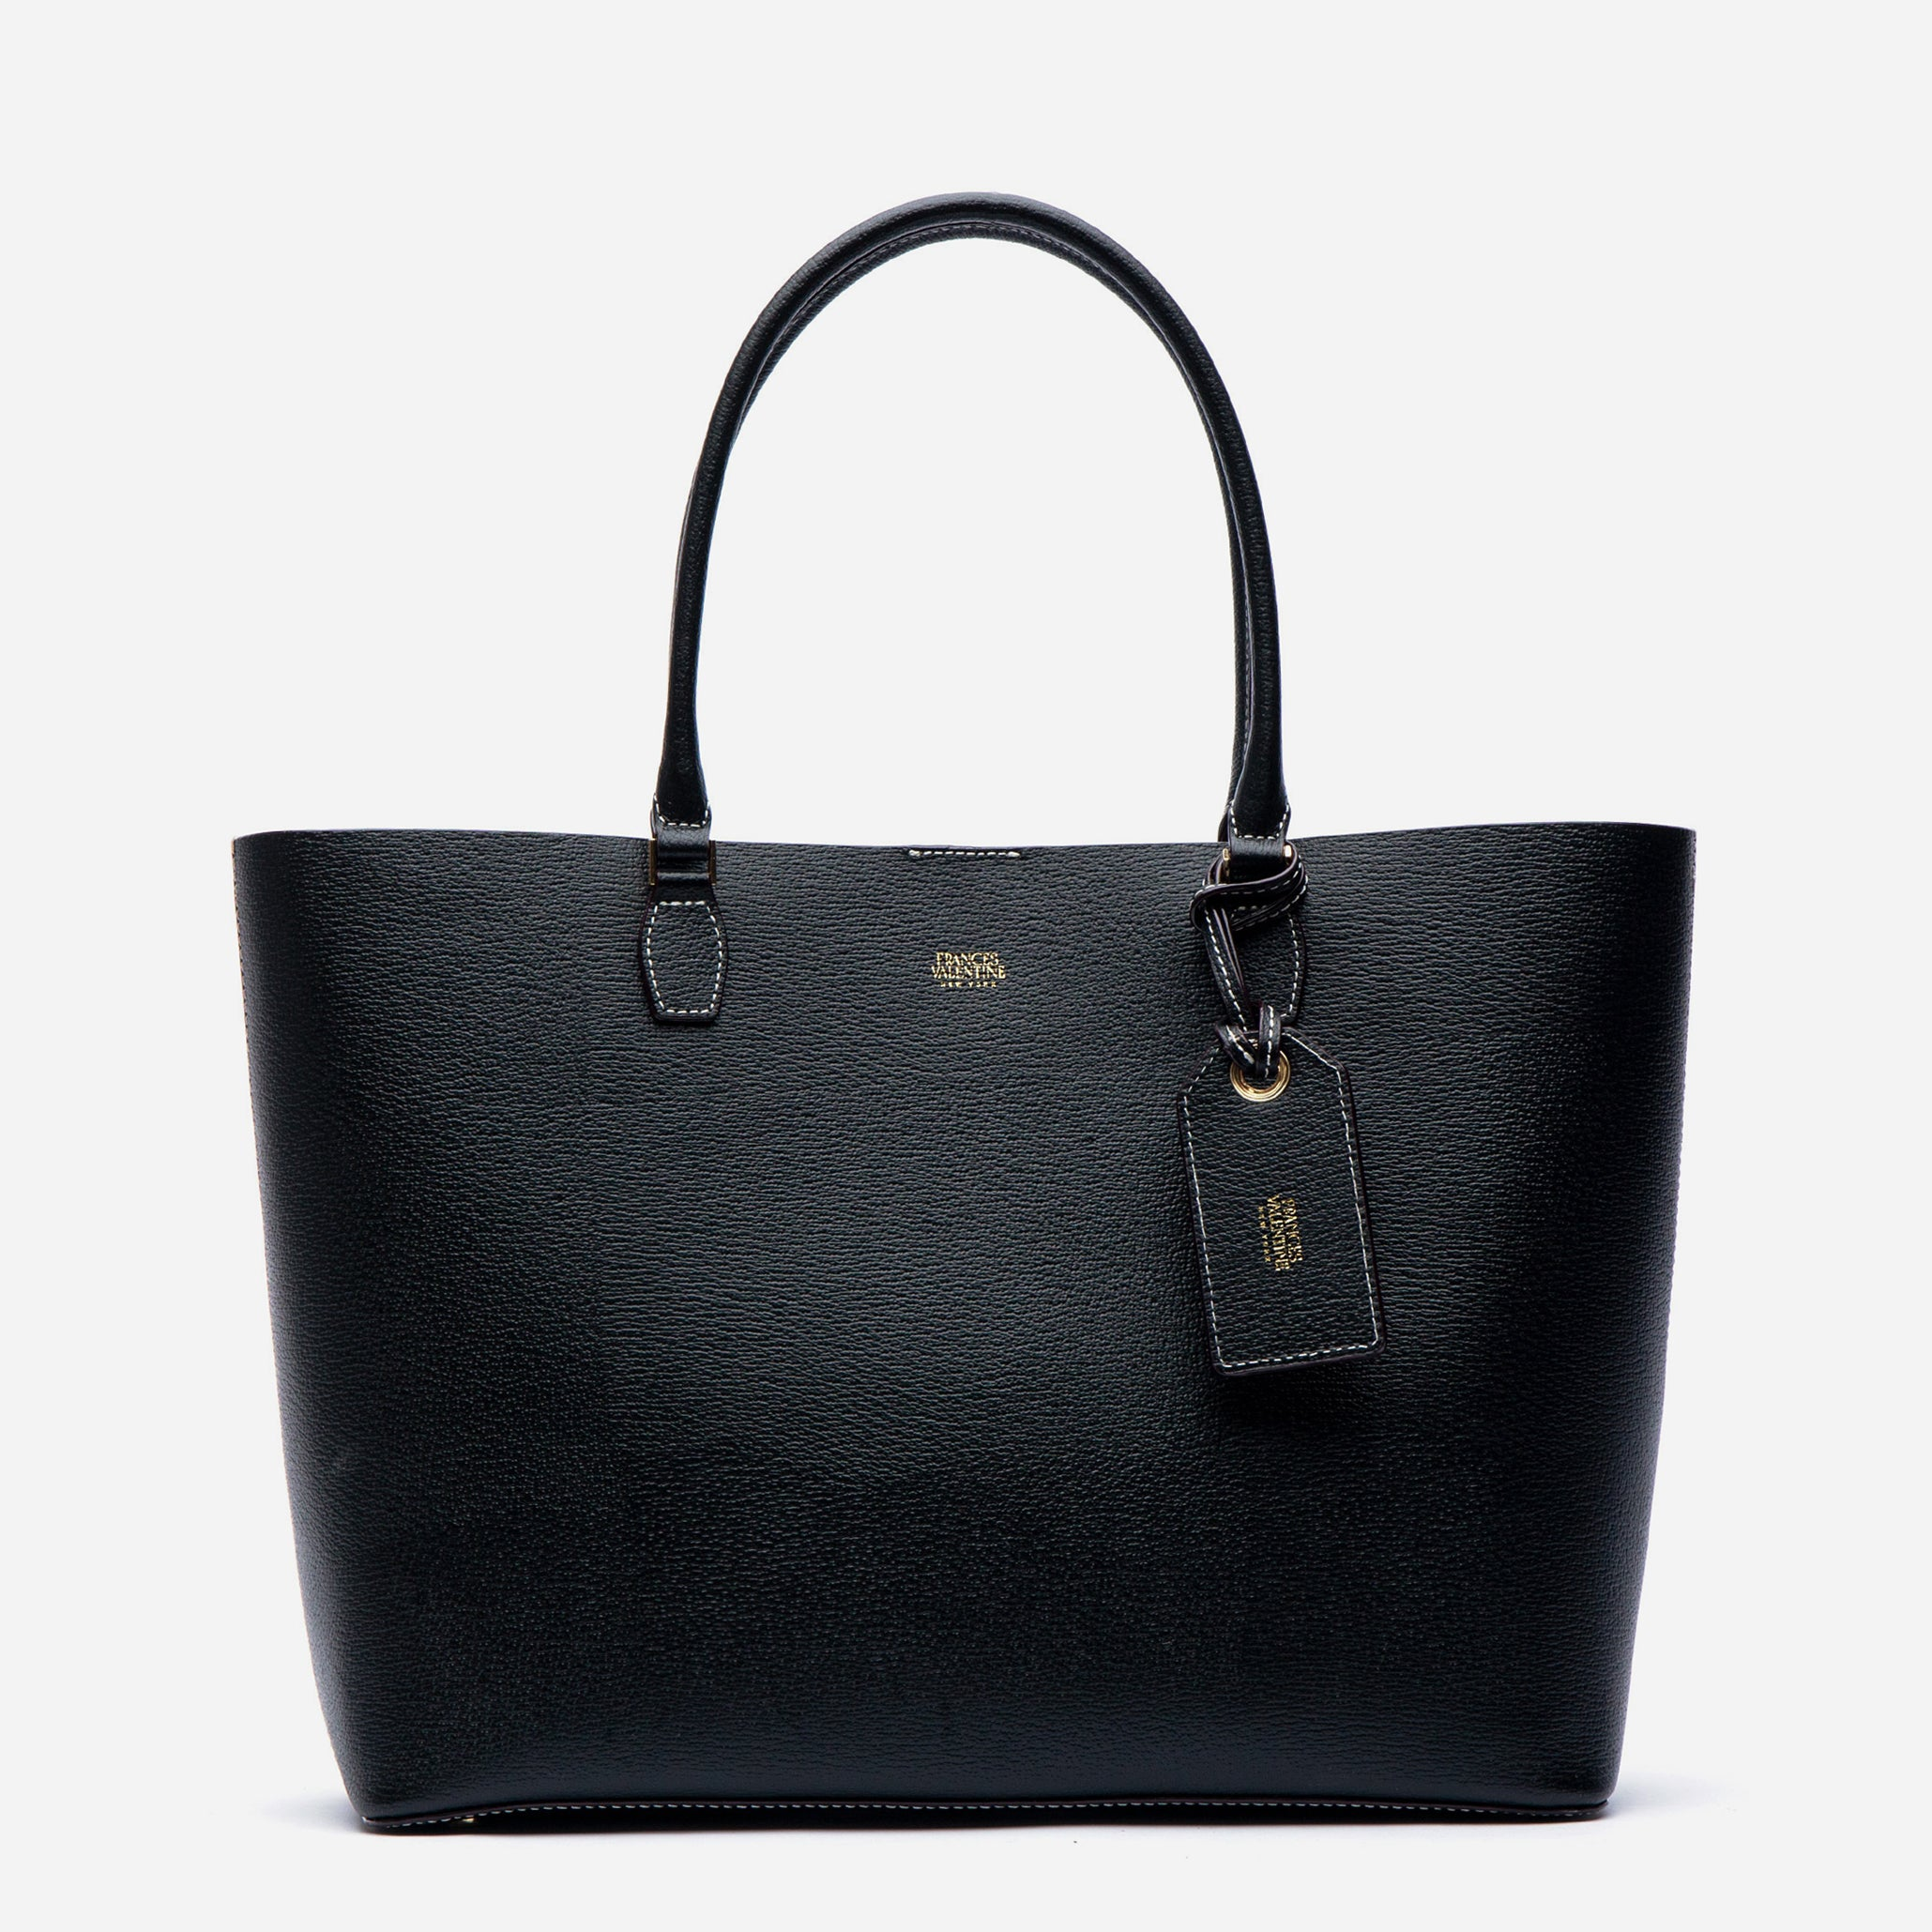 Trixie Tote Boarskin Black - Frances Valentine